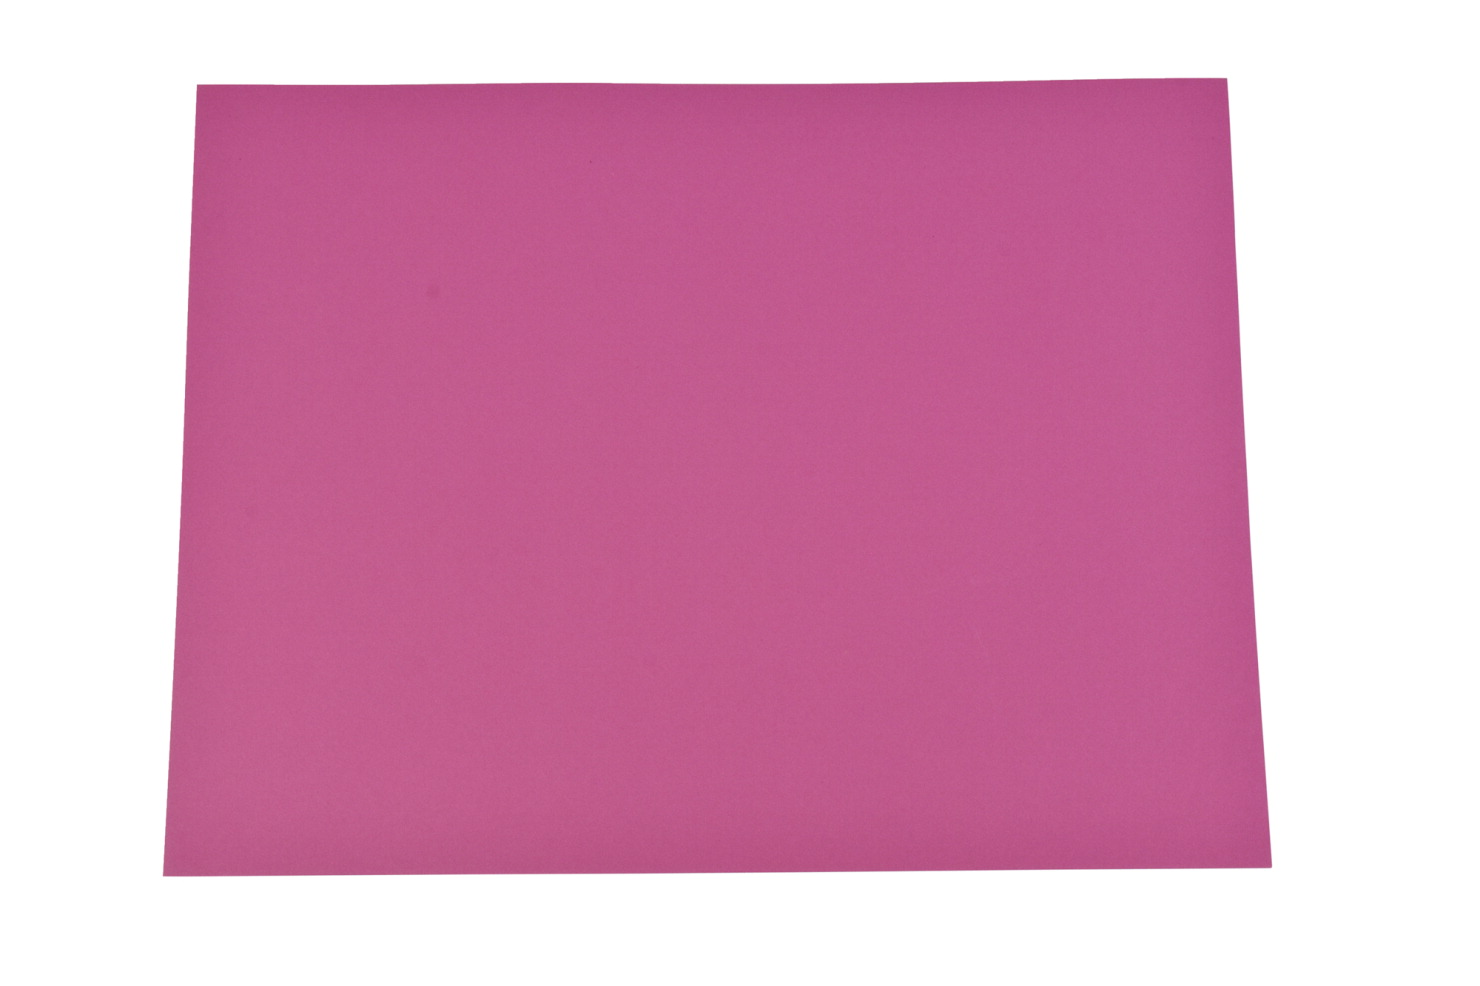 Sax Colored Art Paper, 9 x 12 Inches, Hot Pink, 50 Sheets